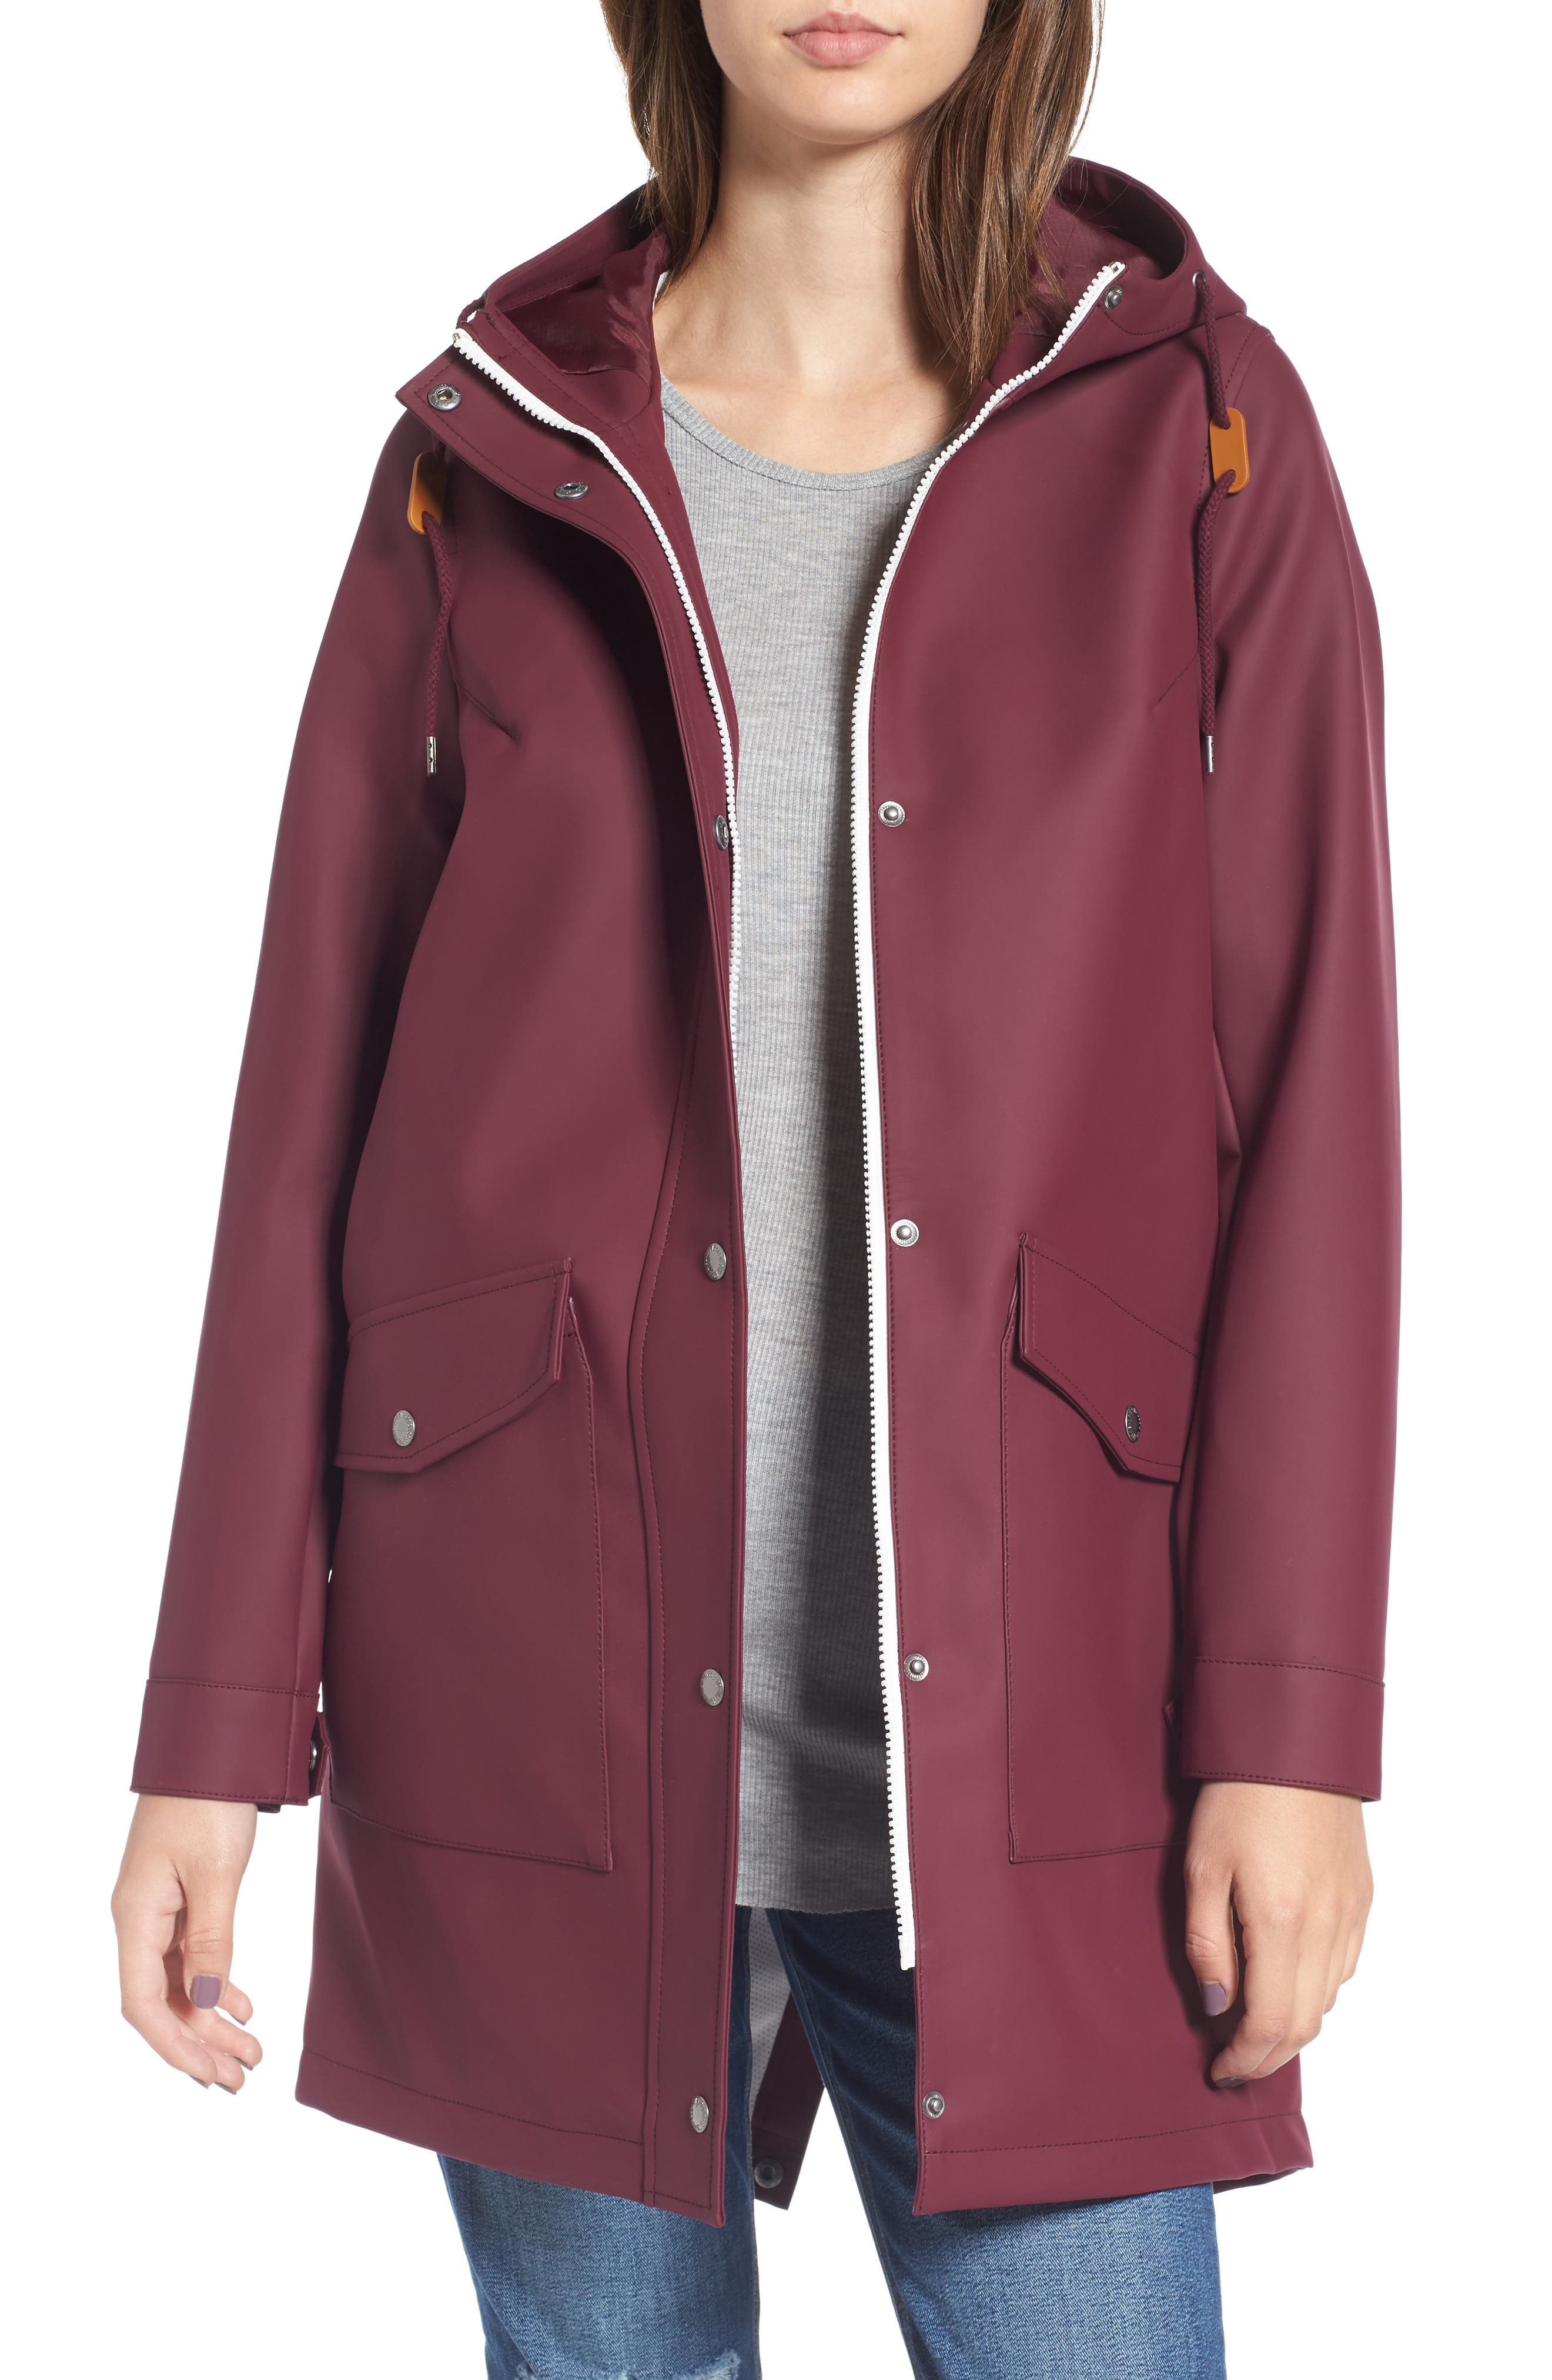 Image of Levi's Water Repellent Lightweight Hooded Raincoat